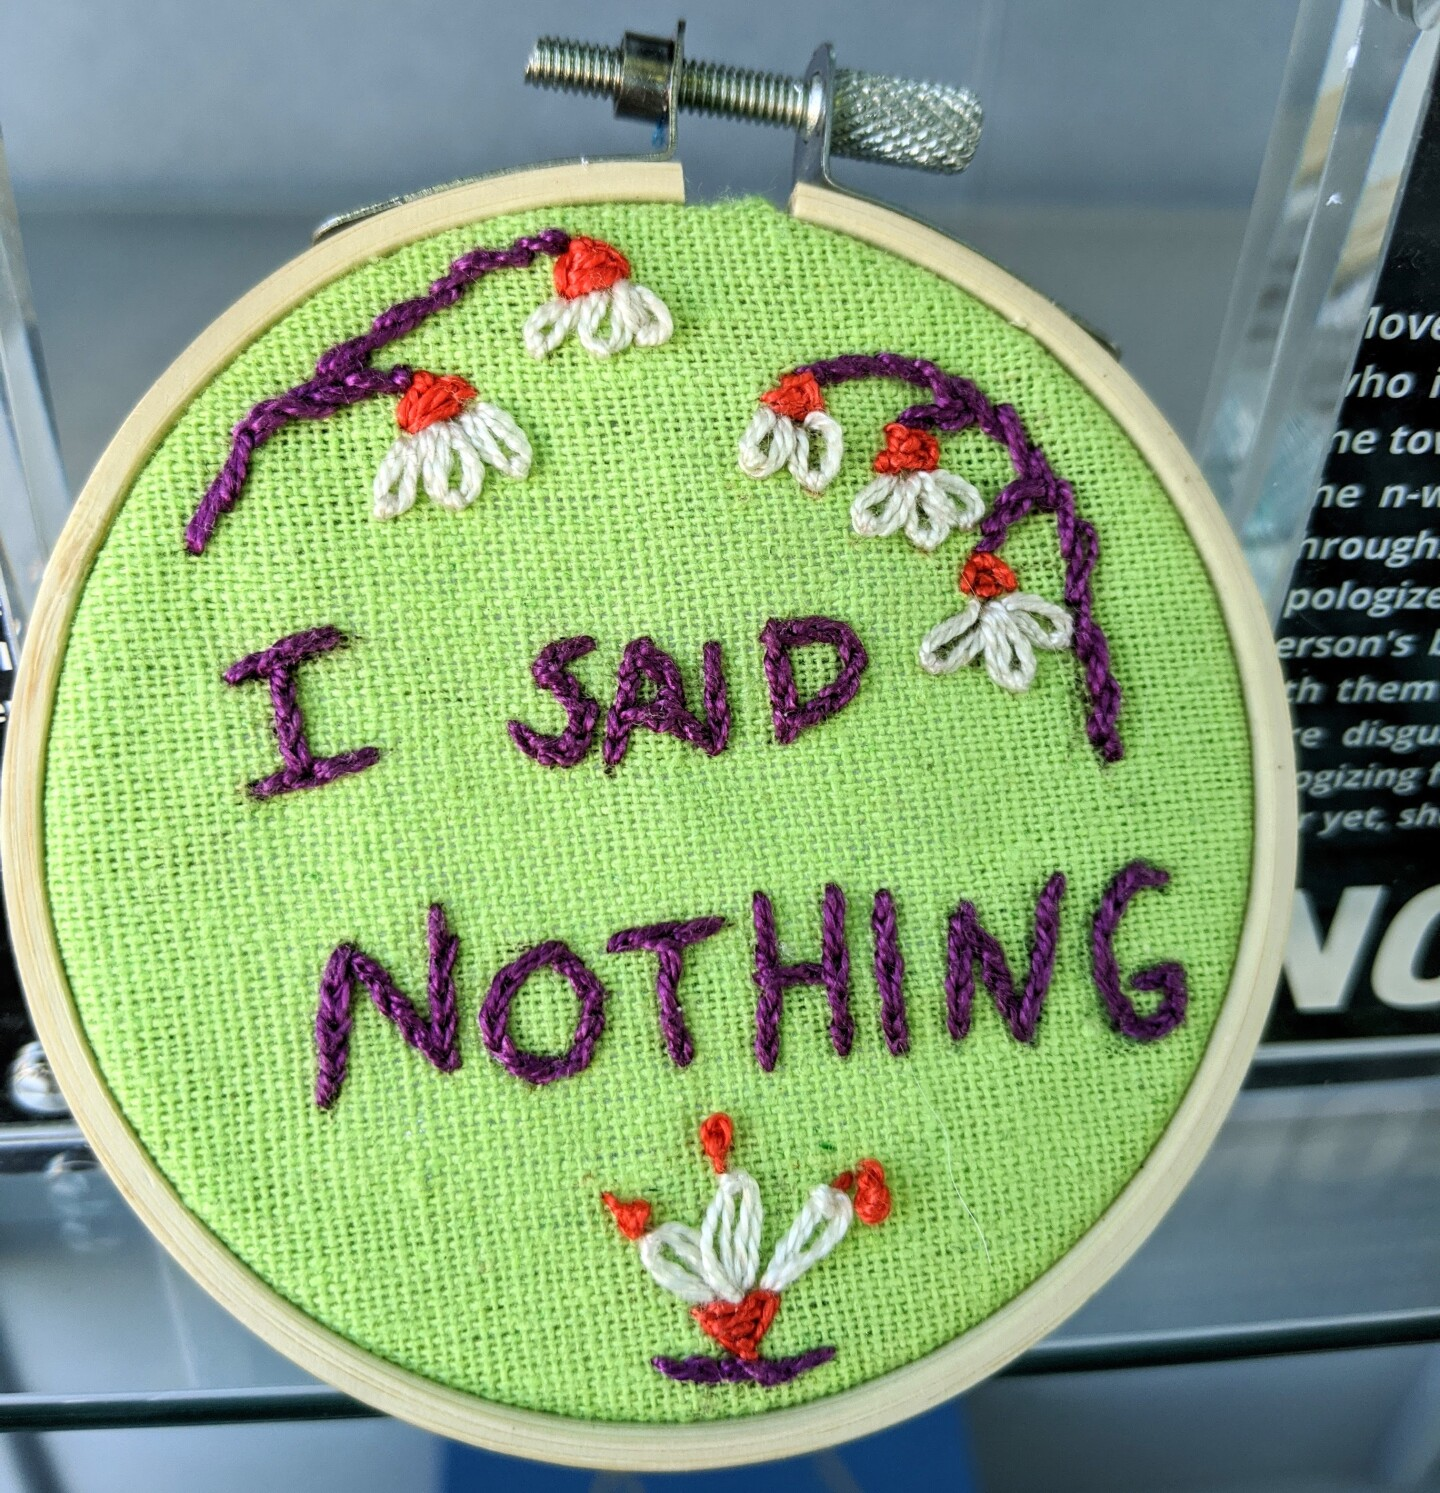 """A small embroidery hoop with bright green fabric stretched across embroidered with the words, """"I said nothing"""" in purple thread. Surrounding it are floral designs featuring white petals, orange details and purple branches."""